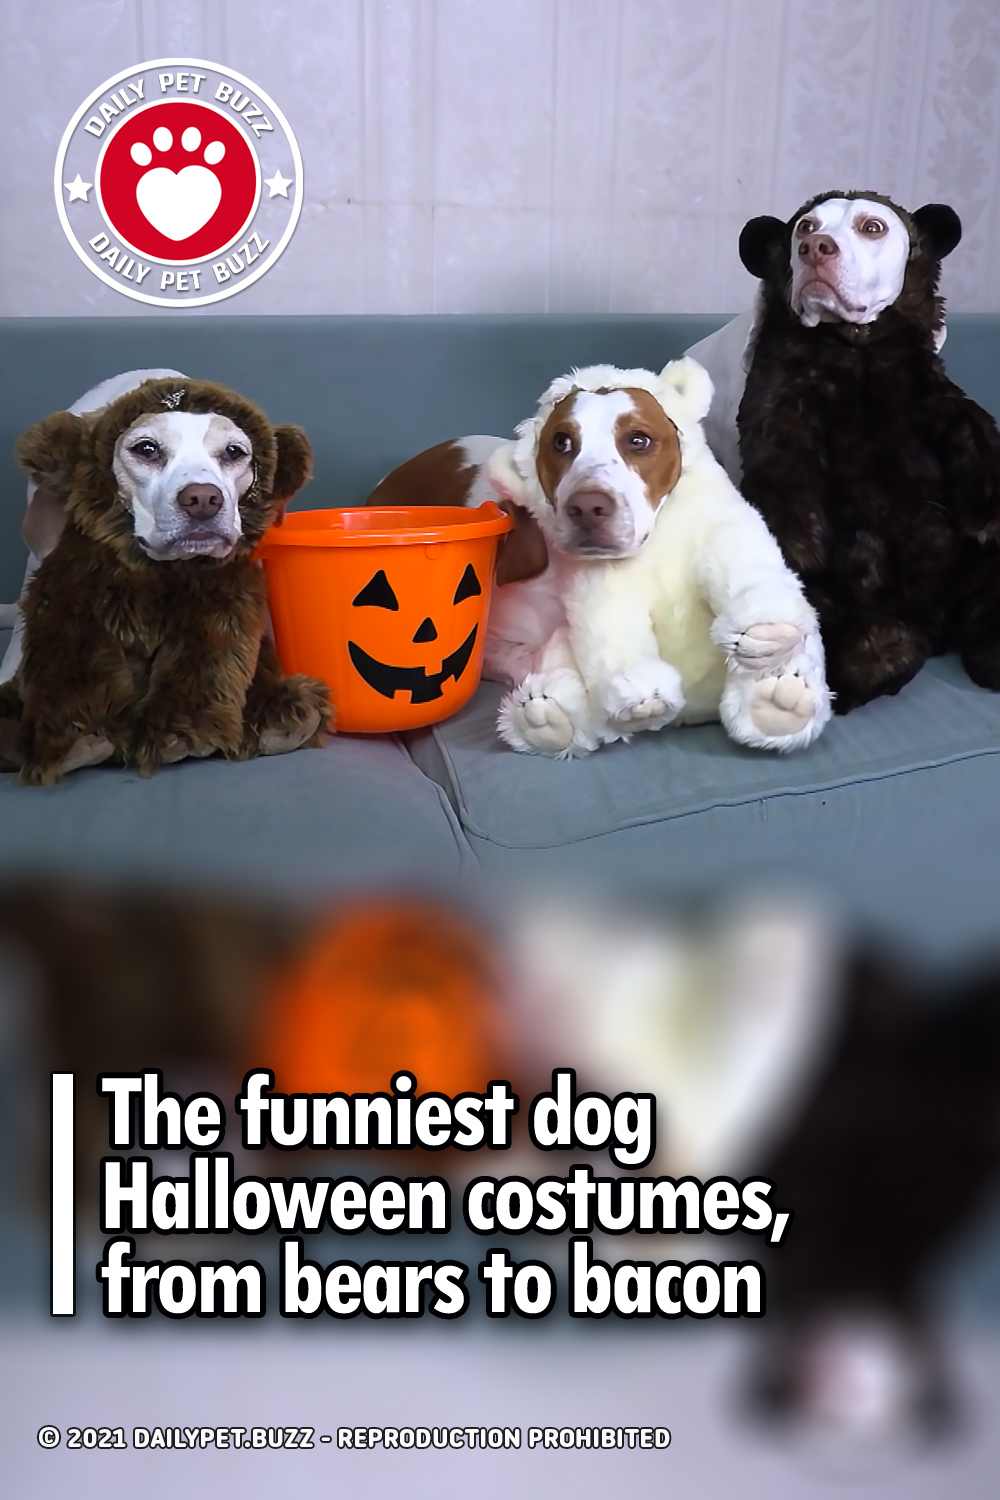 The funniest dog Halloween costumes, from bears to bacon